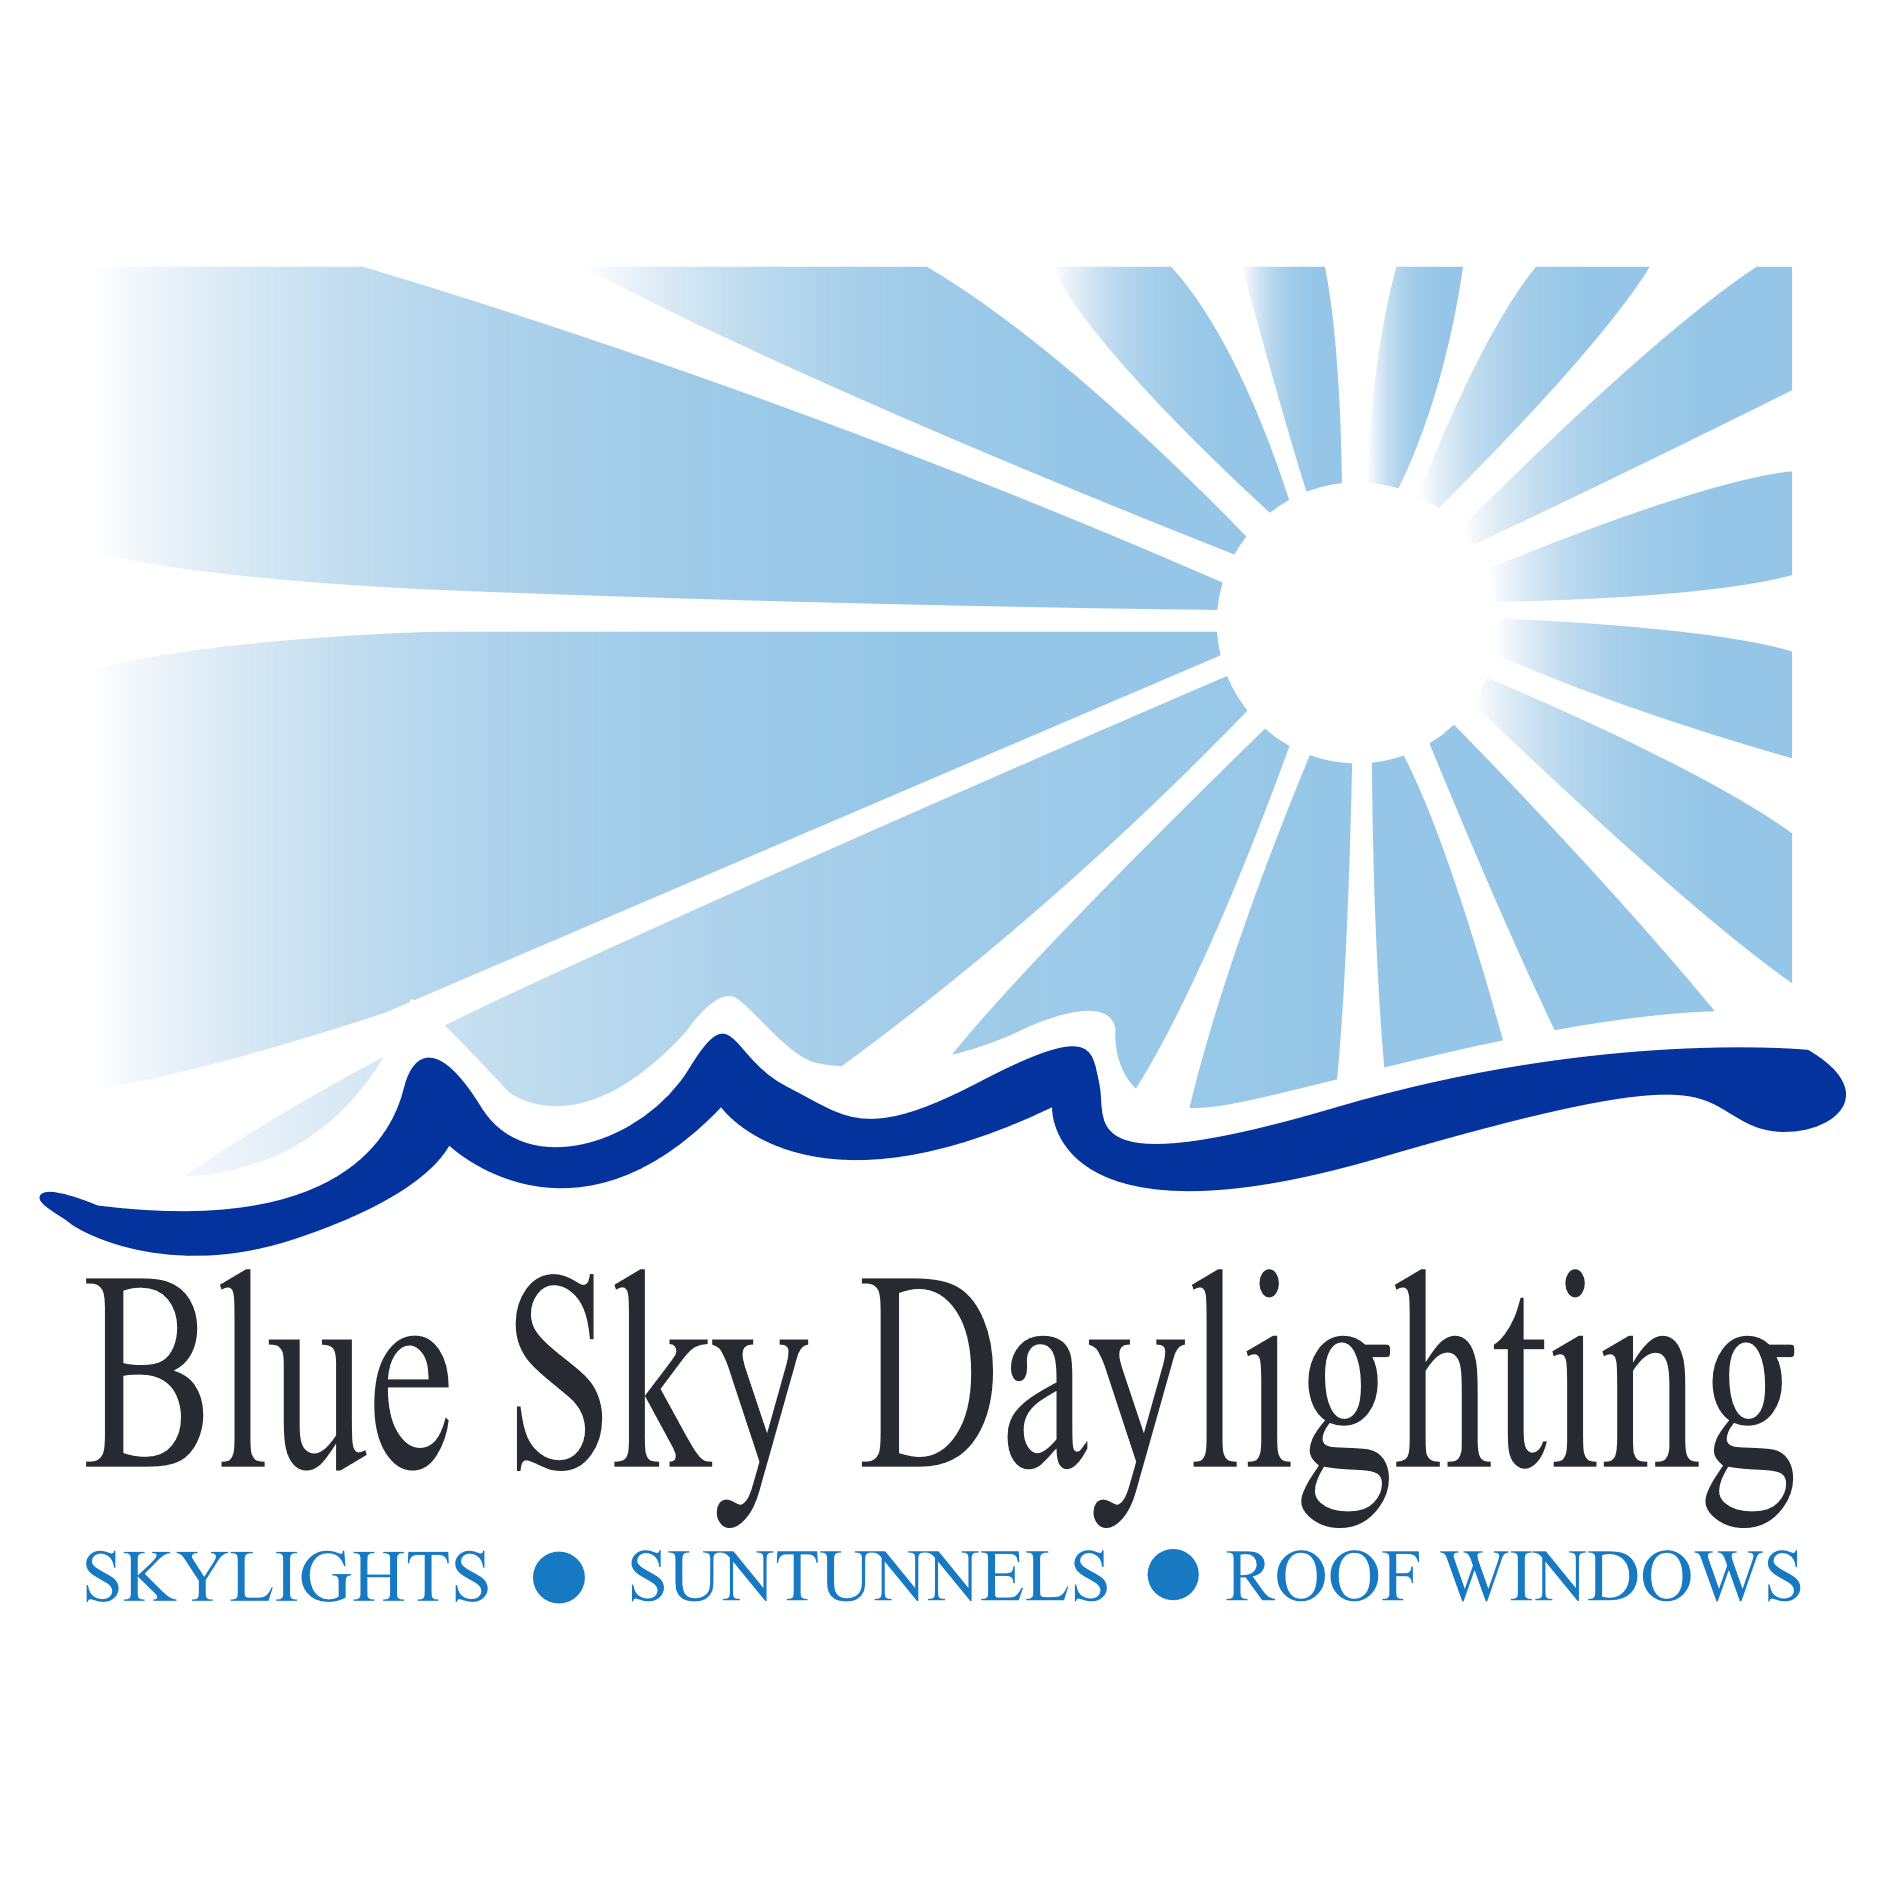 Blue Sky Daylighting - Irmo, SC 29063 - (864)377-1033 | ShowMeLocal.com